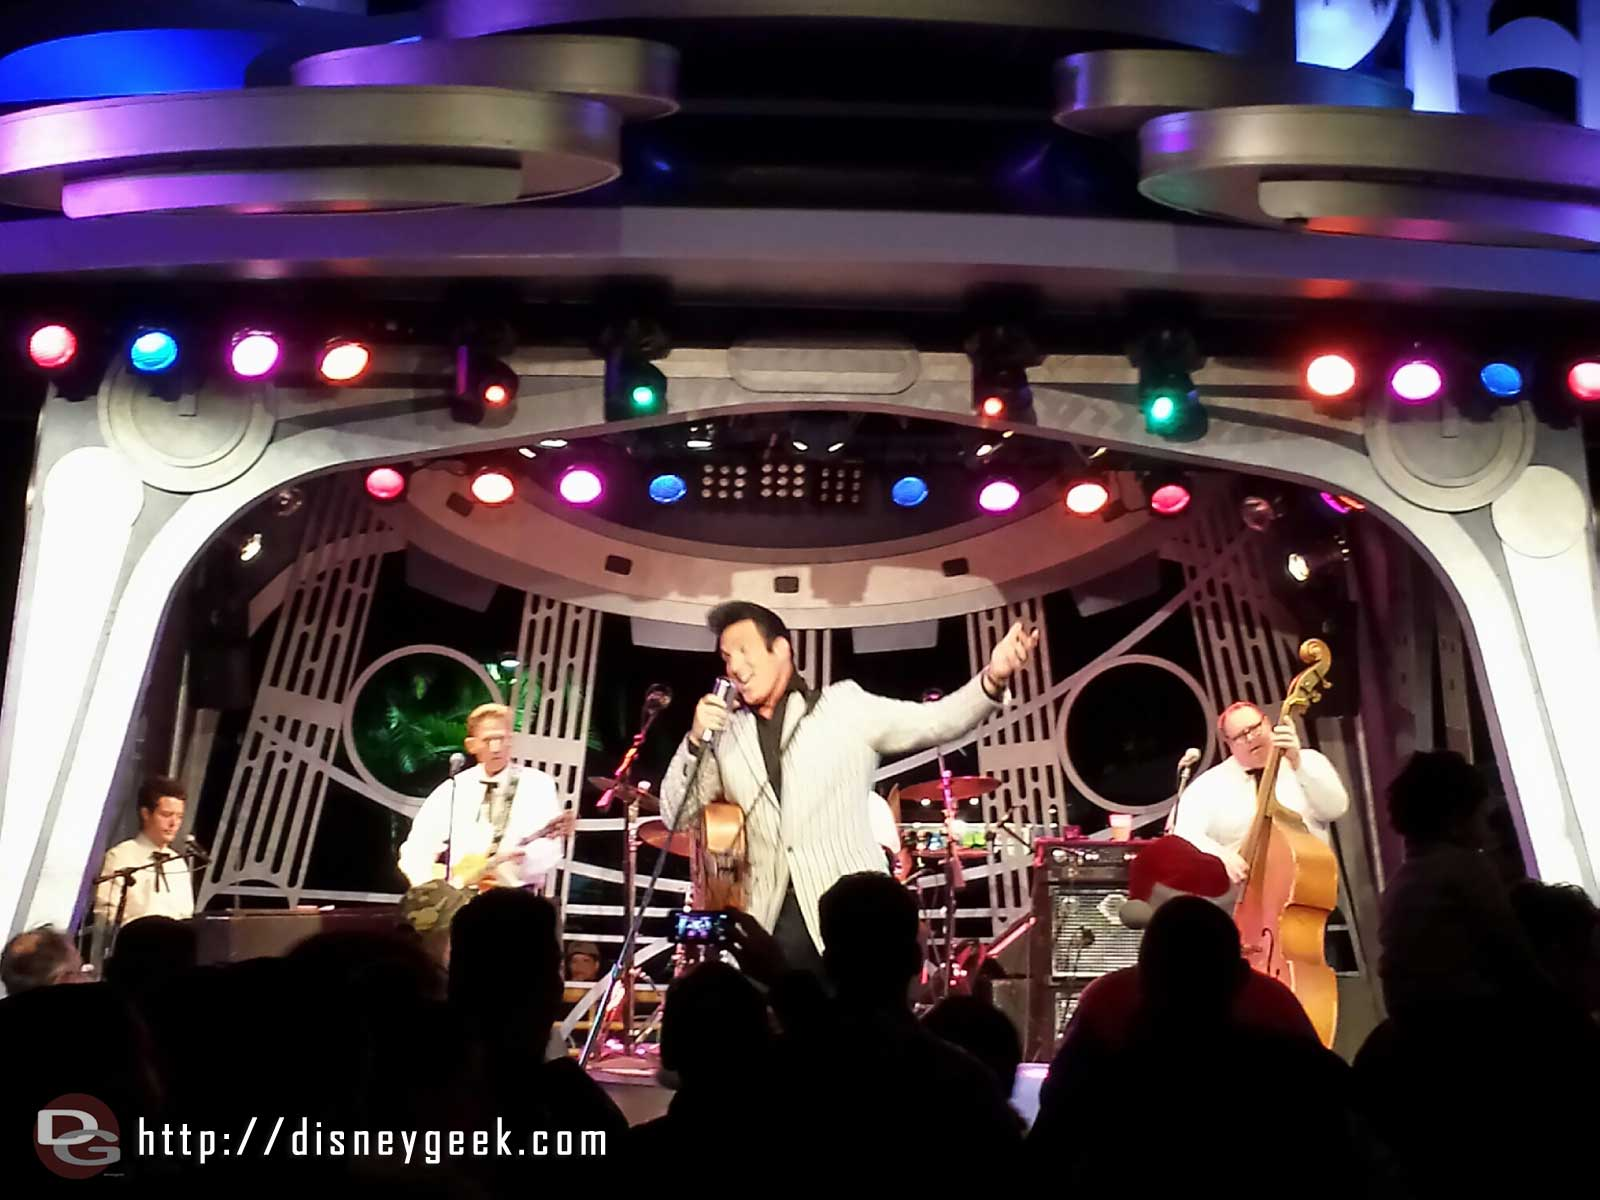 Time for #Elvis, Scot Bruce performing at Tomorrowland Terrace tonight #Disneyland